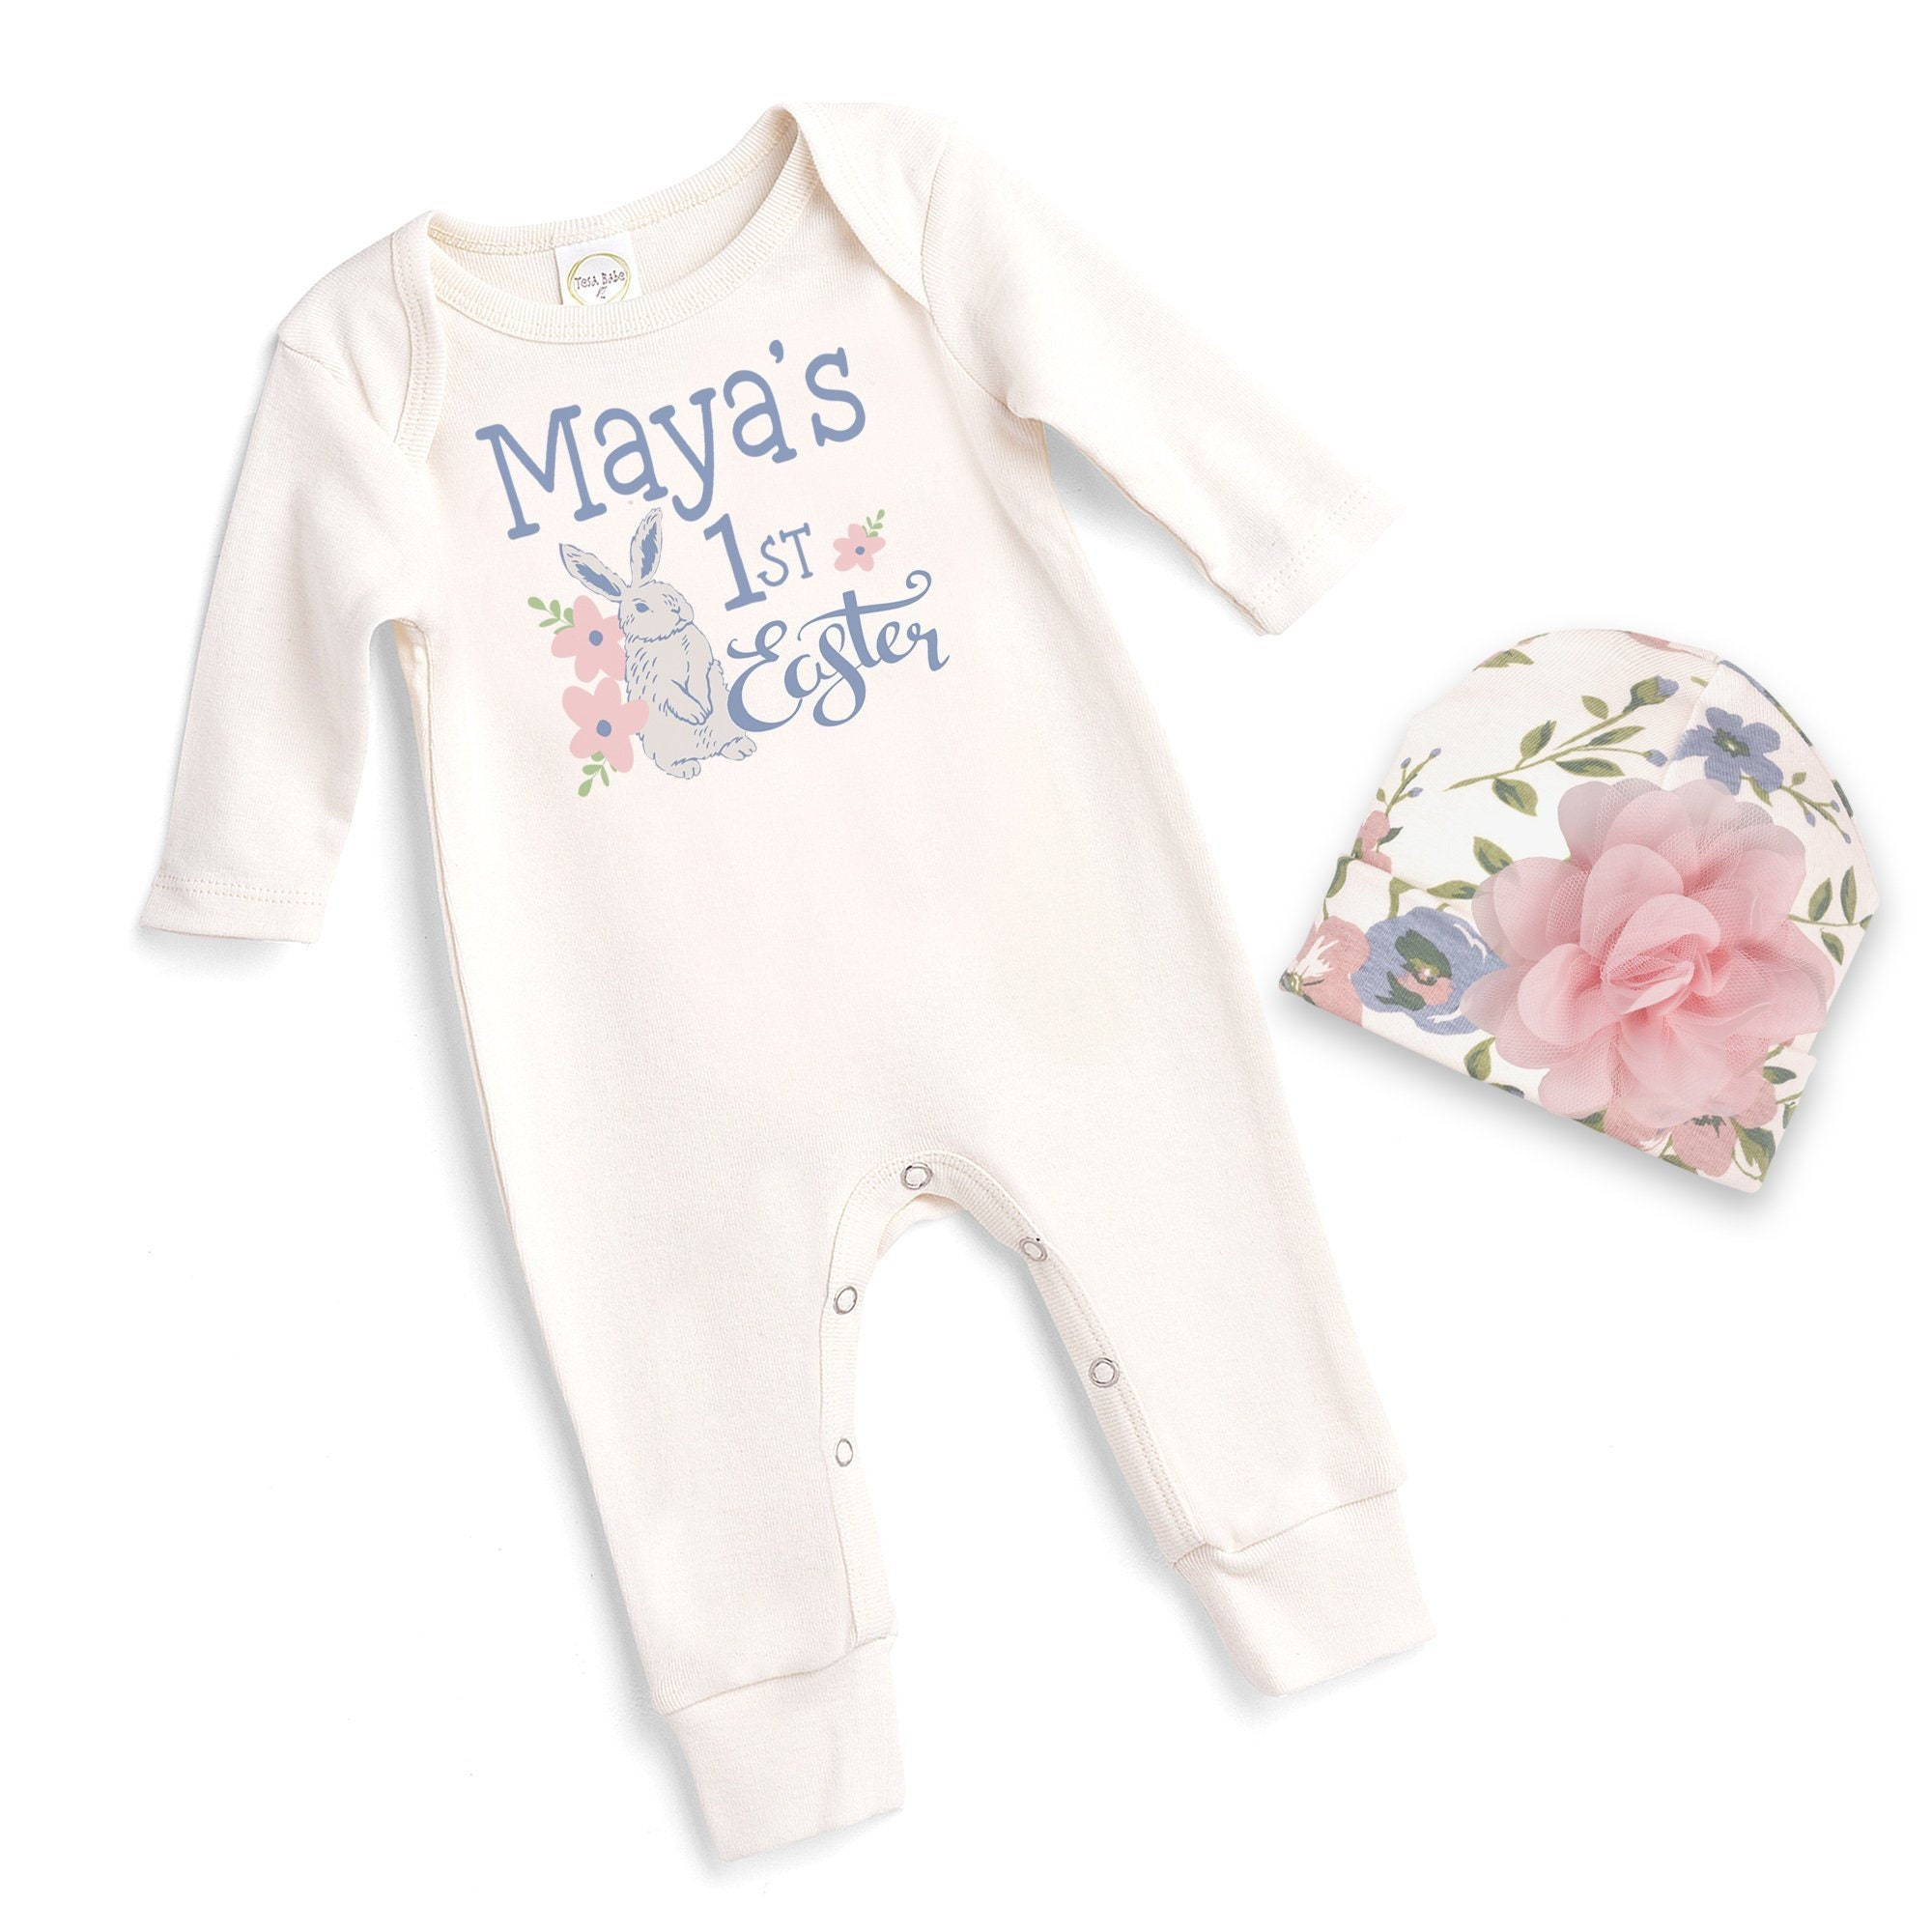 42e4b2716dae Personalized Baby Girl Easter Outfit